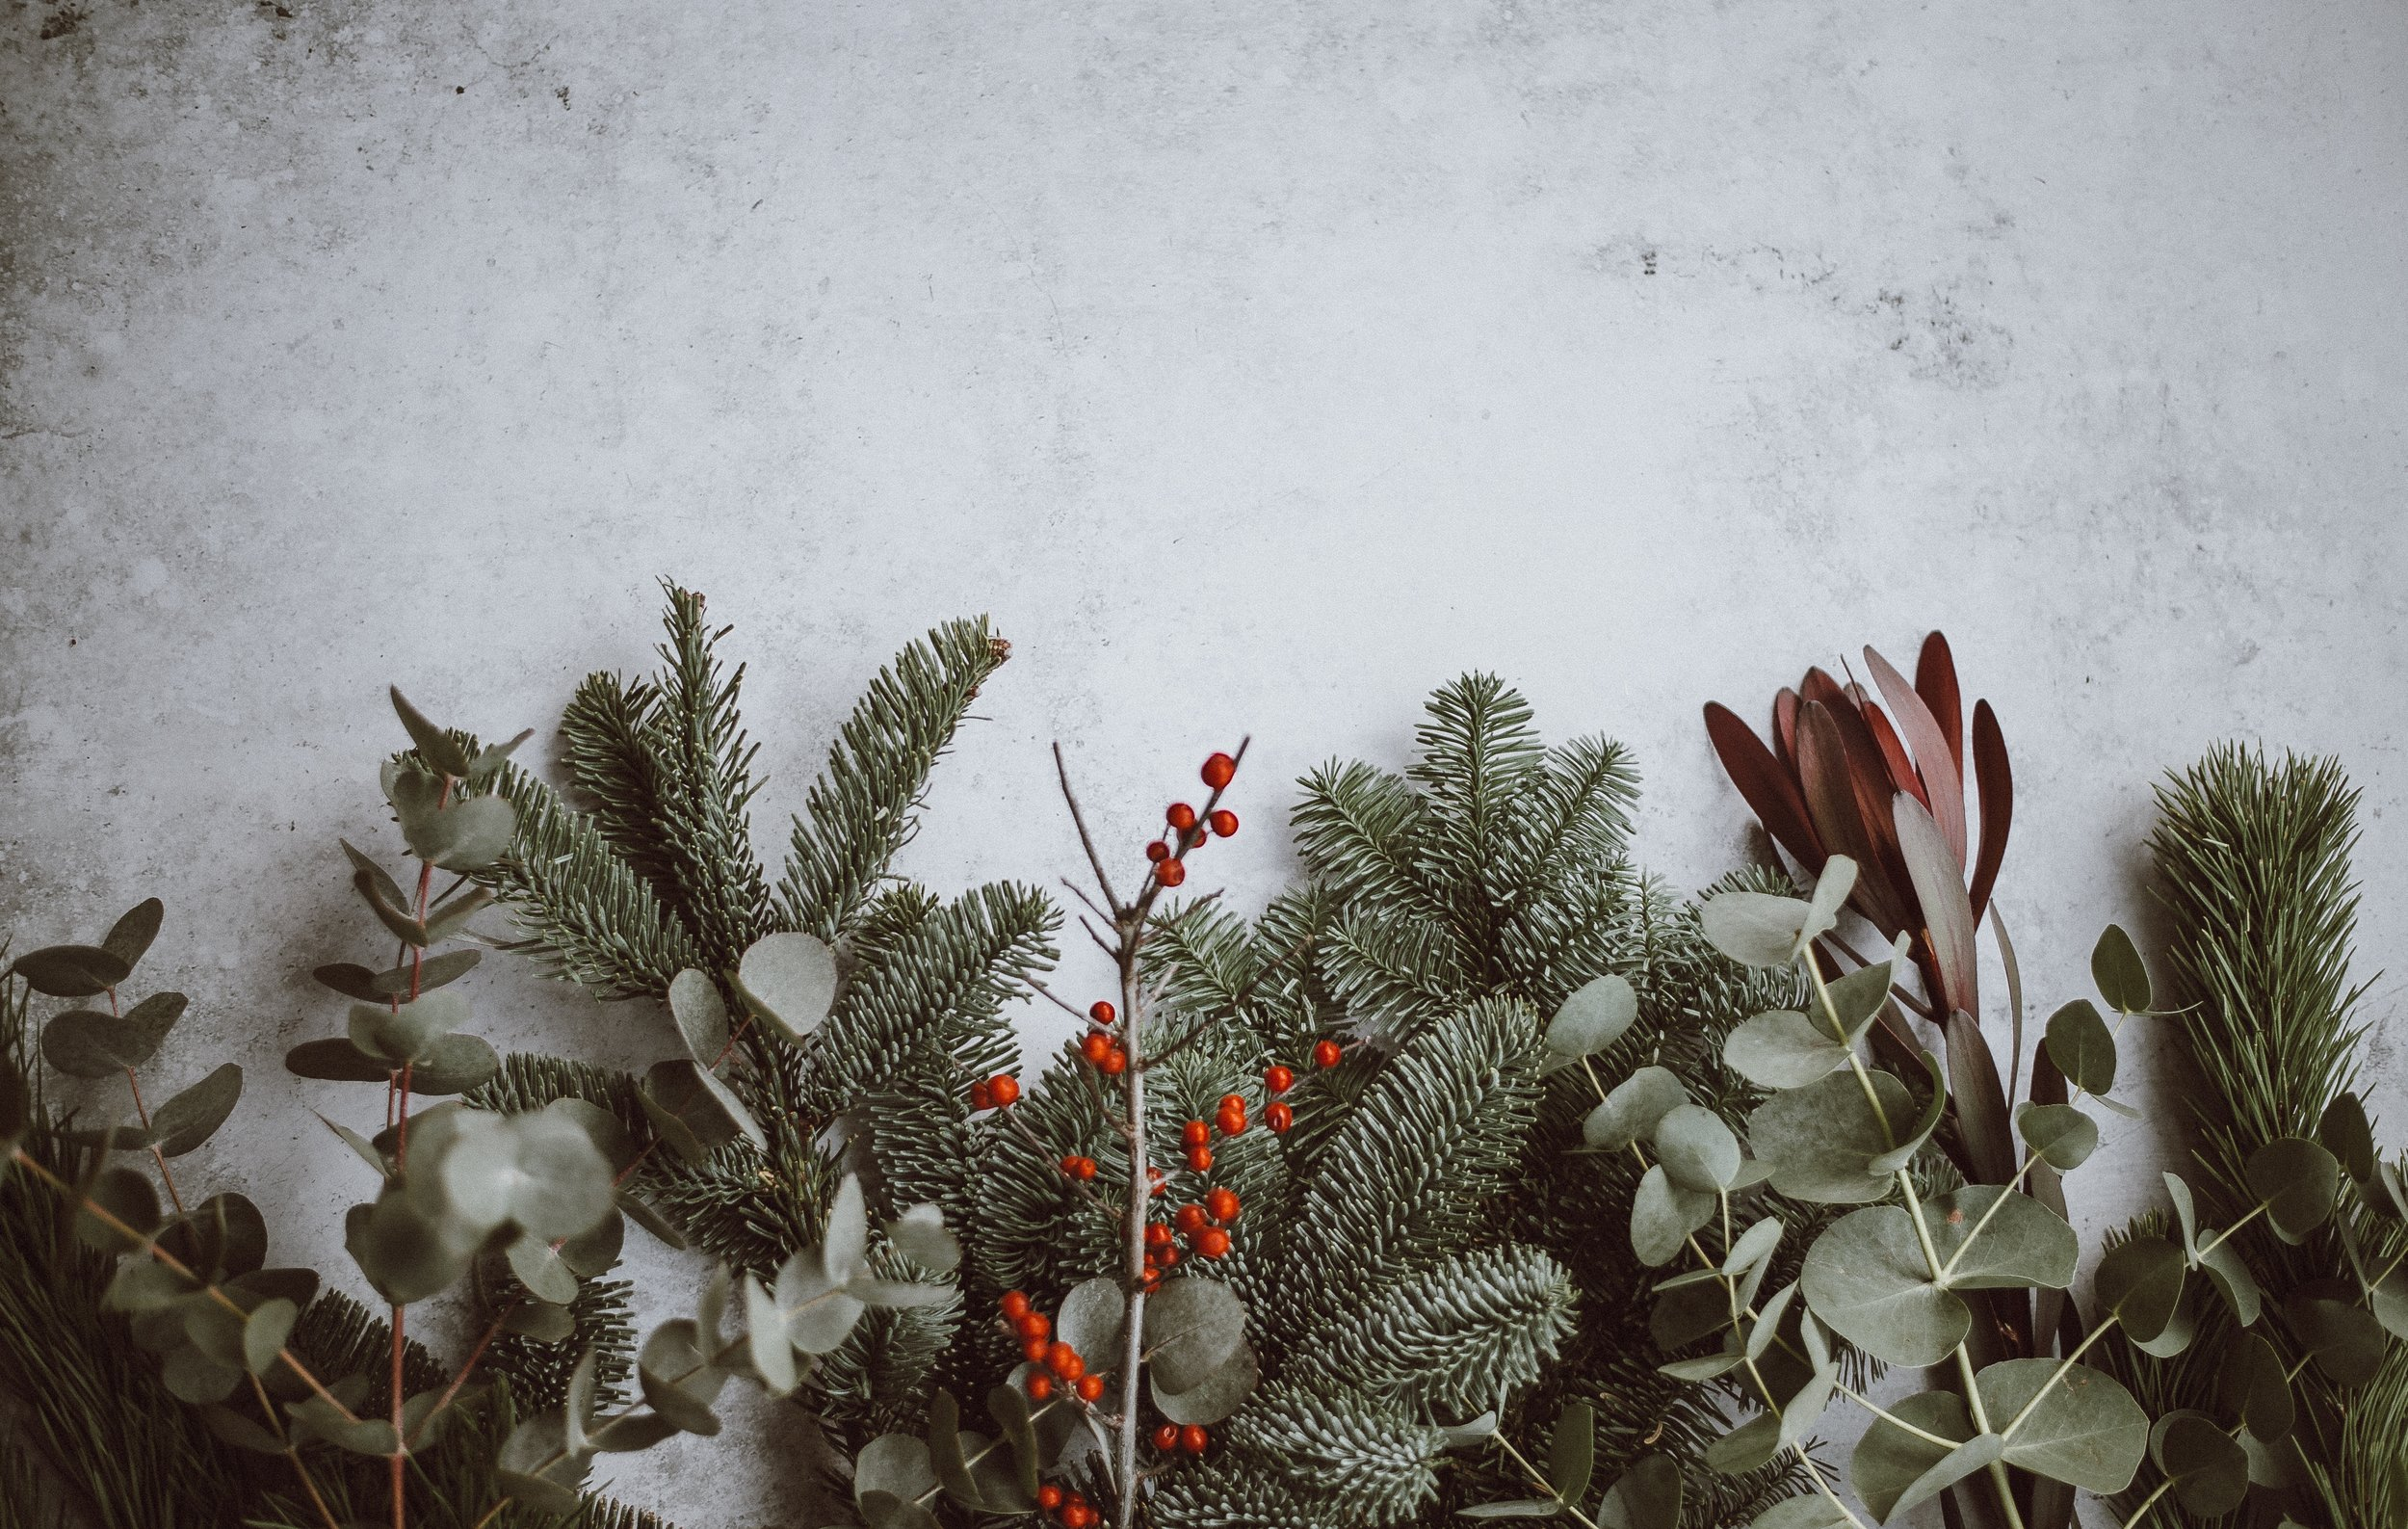 Image: Various twigs and branches of fir, eucalyptus and winterberry in front of a grey background. Photo by anniespratt on Unsplash.